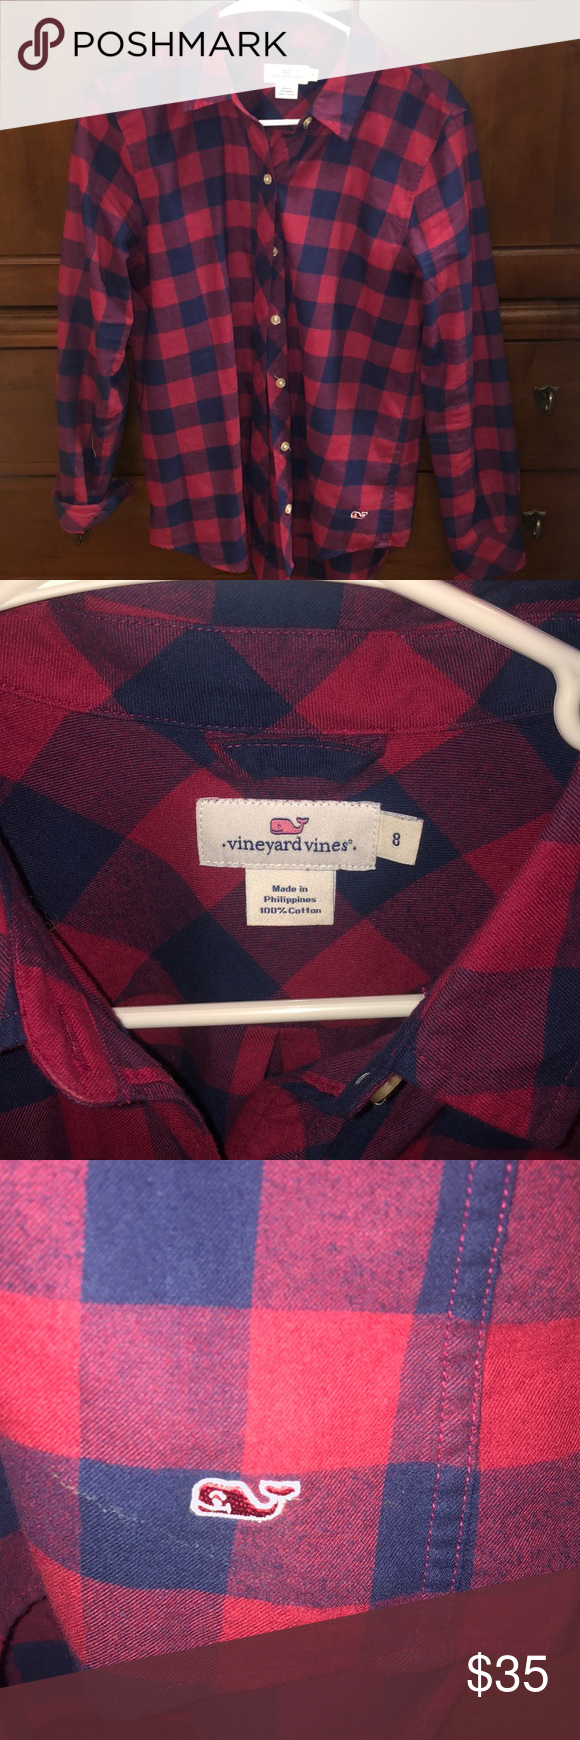 Vineyard Vines Buffalo plaid flannel Excellent condition Worn twice Perfect fobuffalo